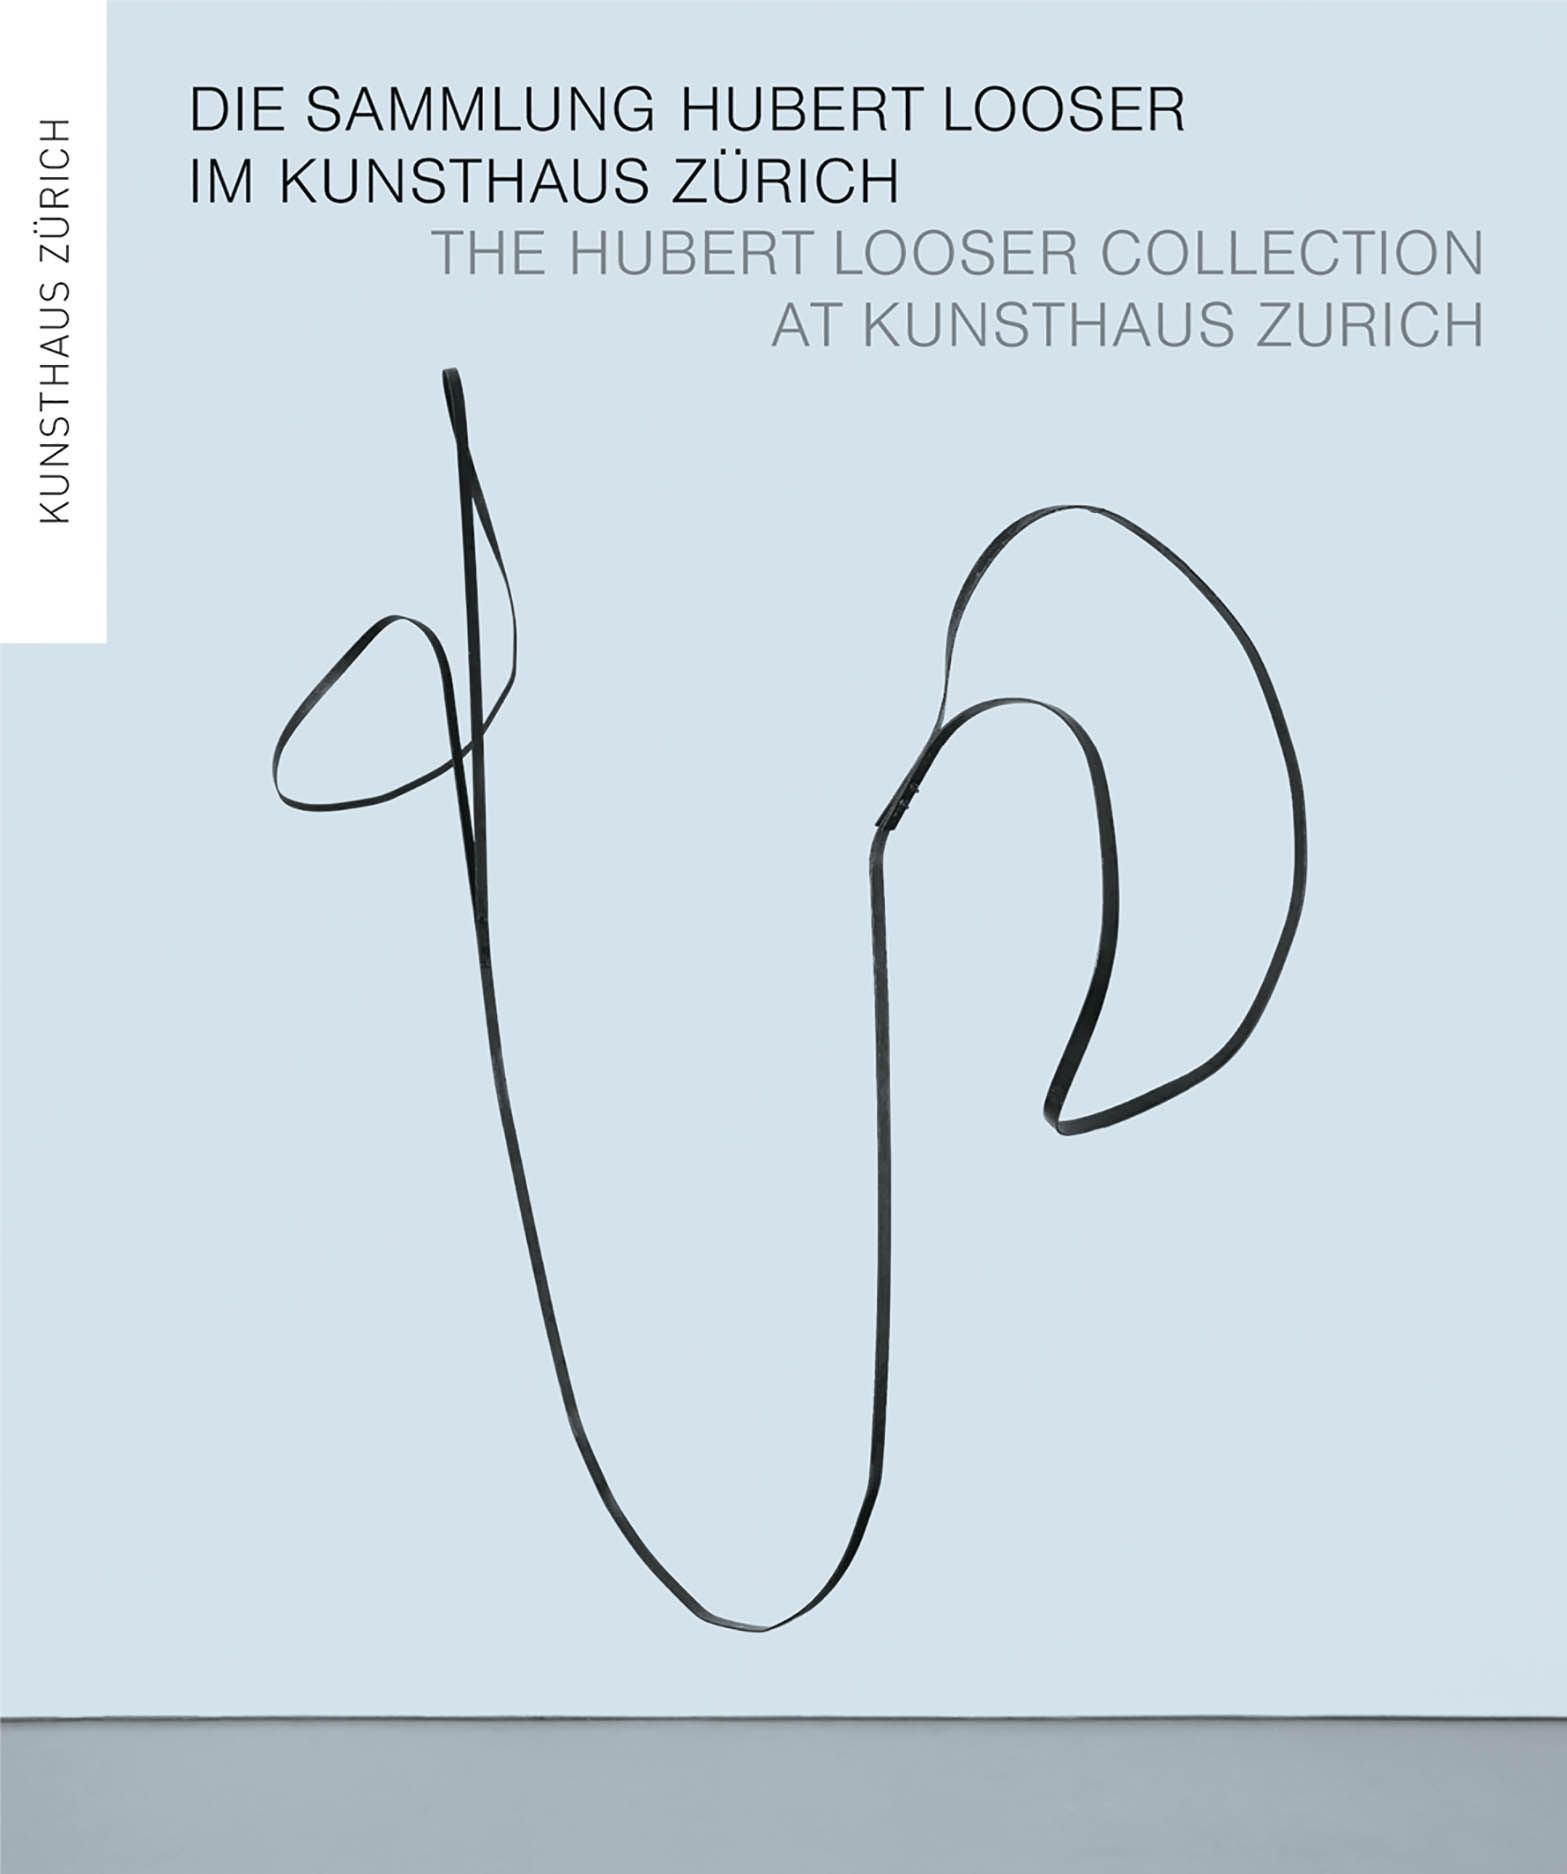 The Hubert Looser Collection at Kunsthaus Zurich